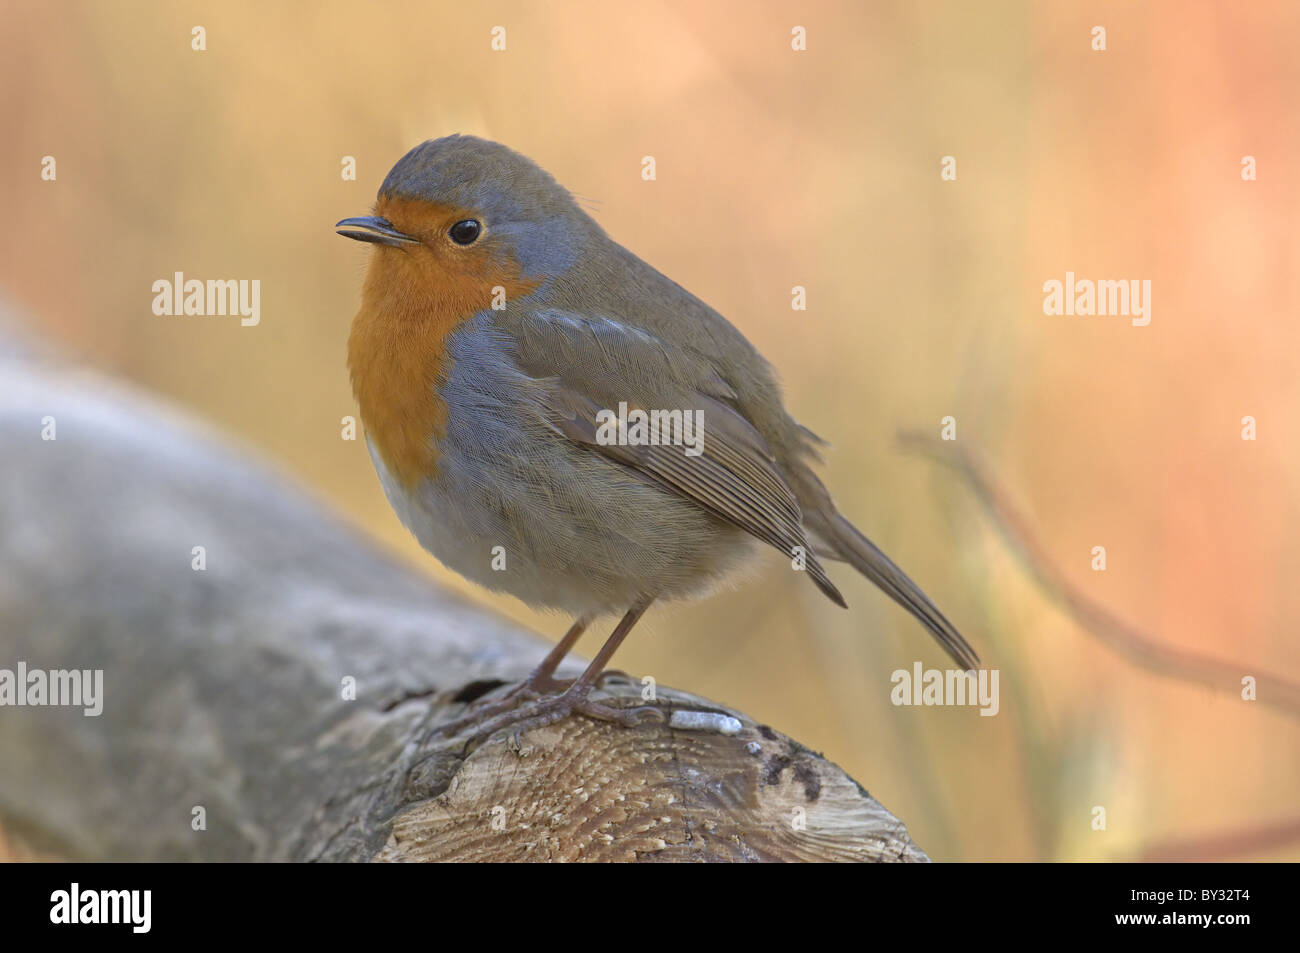 ROBIN ERITHACUS RUBECULA PERCHED ON FENCE. WINTER UK Stock Photo